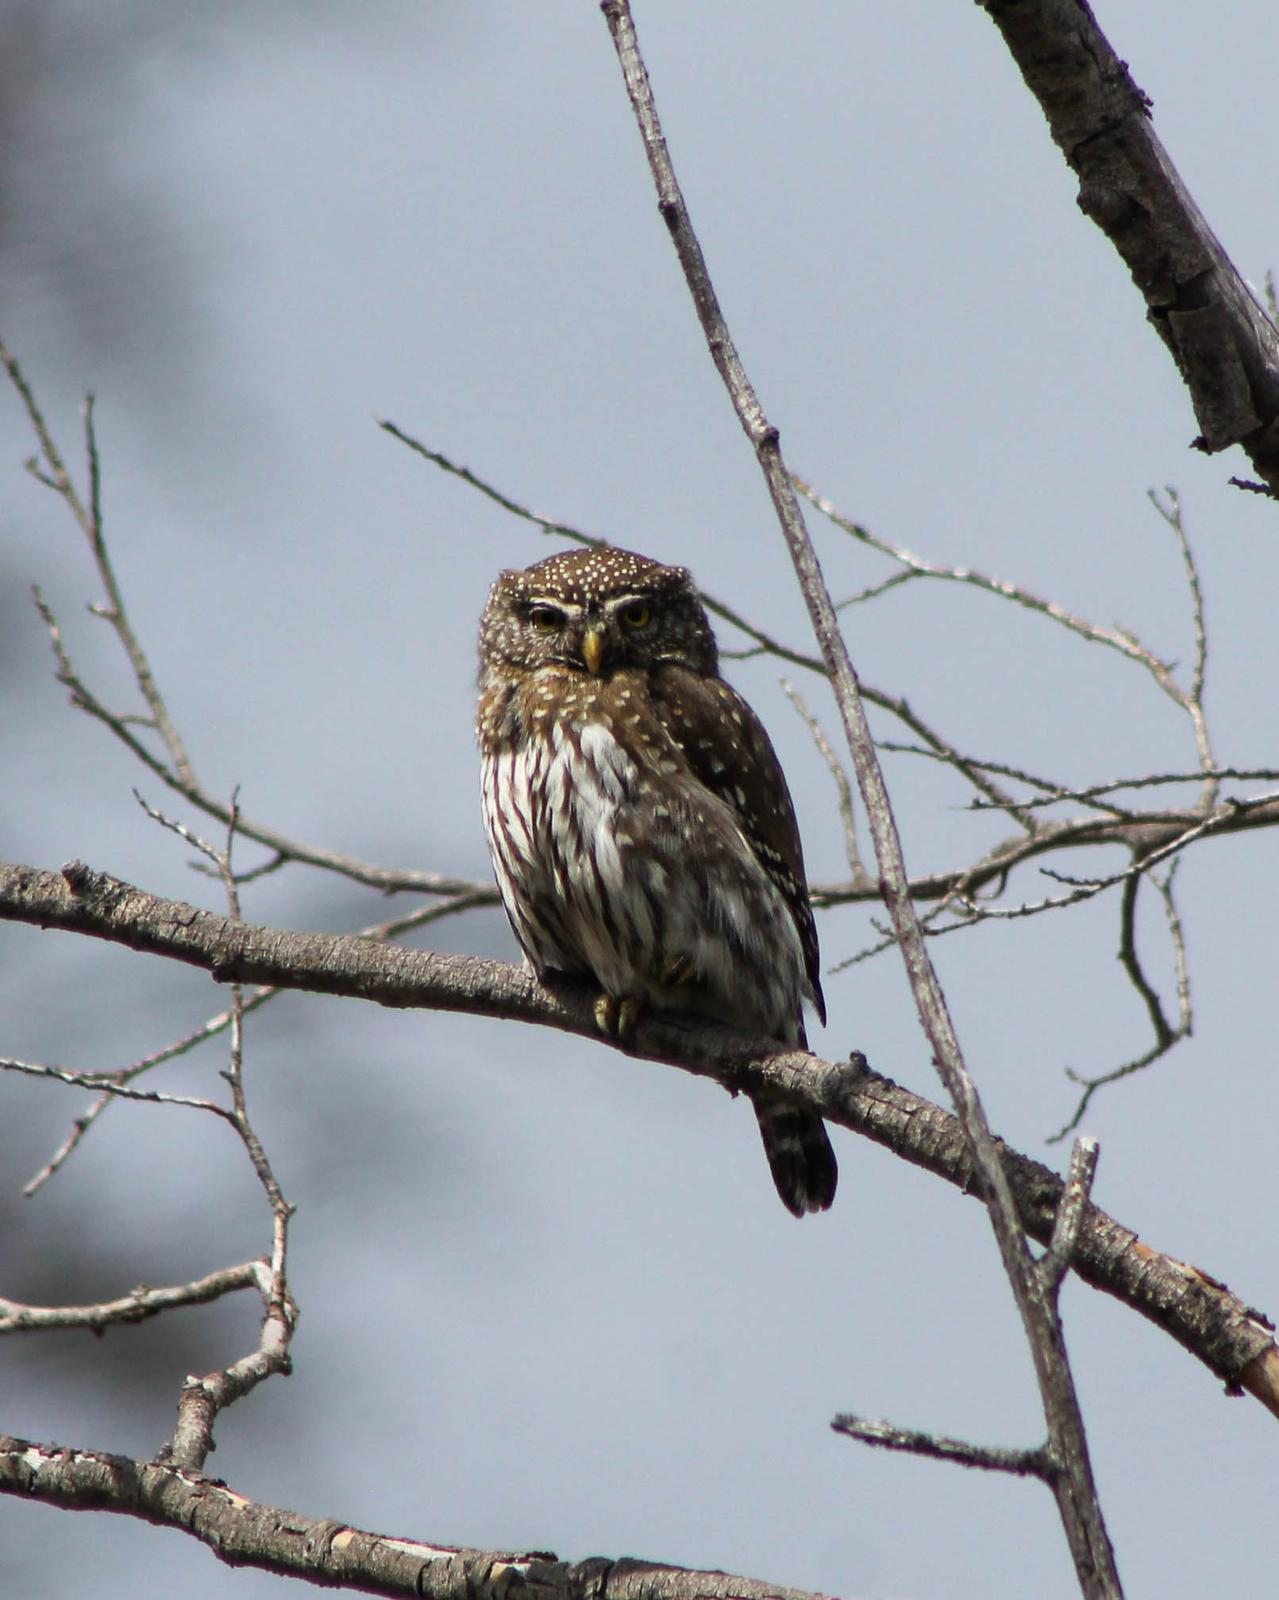 Northern Pygmy-Owl Photo by Roy Morris